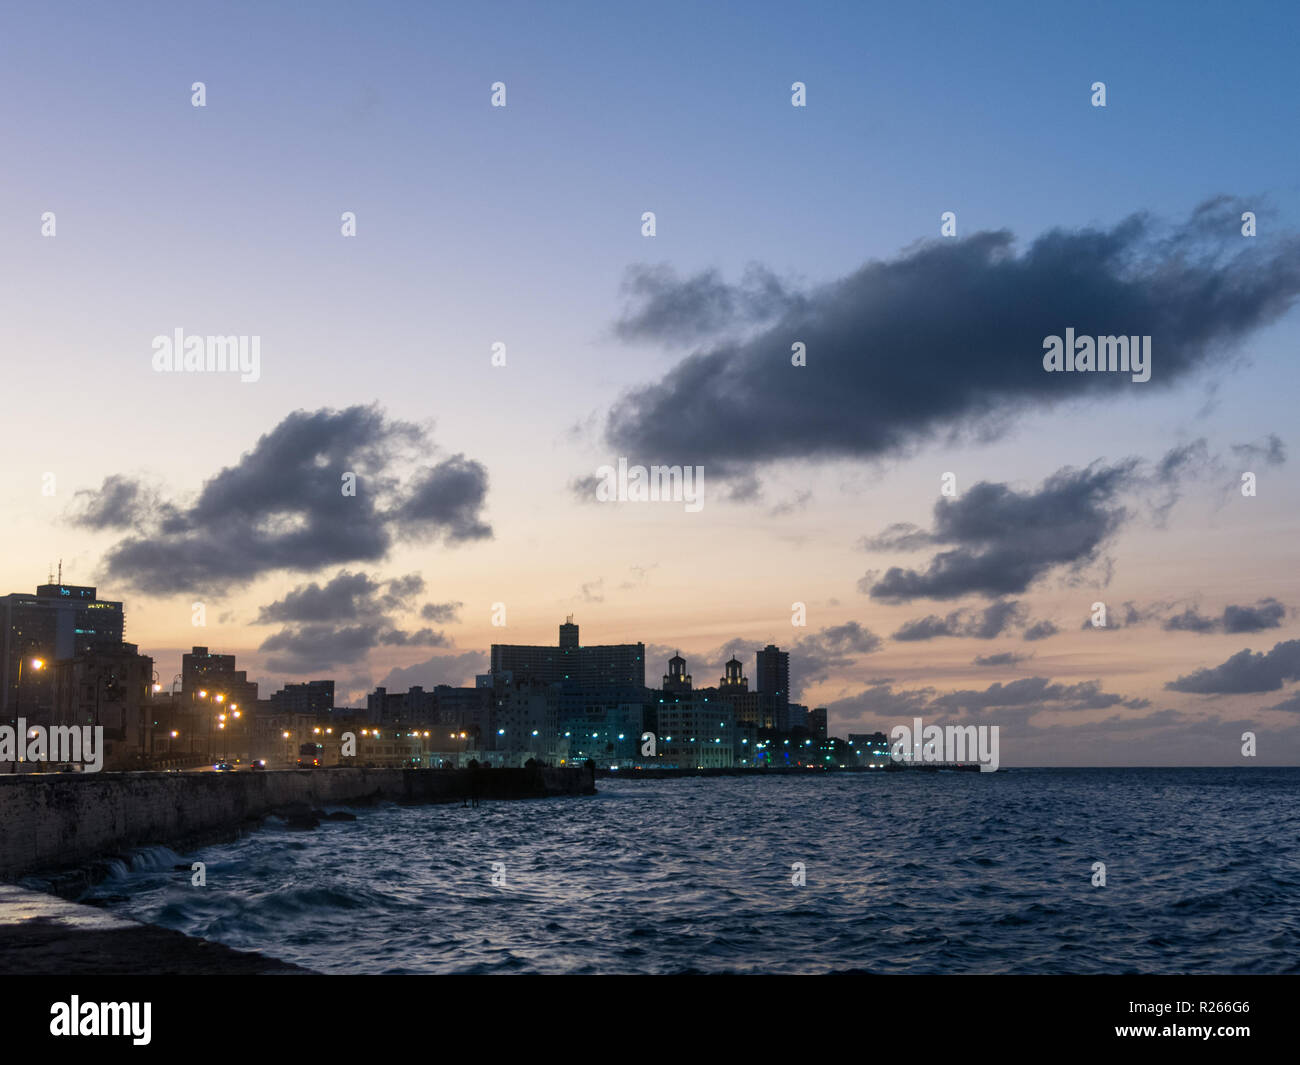 Sunset at Malecon, the famous Havana promenades where Habaneros, lovers and most of all individual fishermen meet, Havana, Cuba - Stock Image